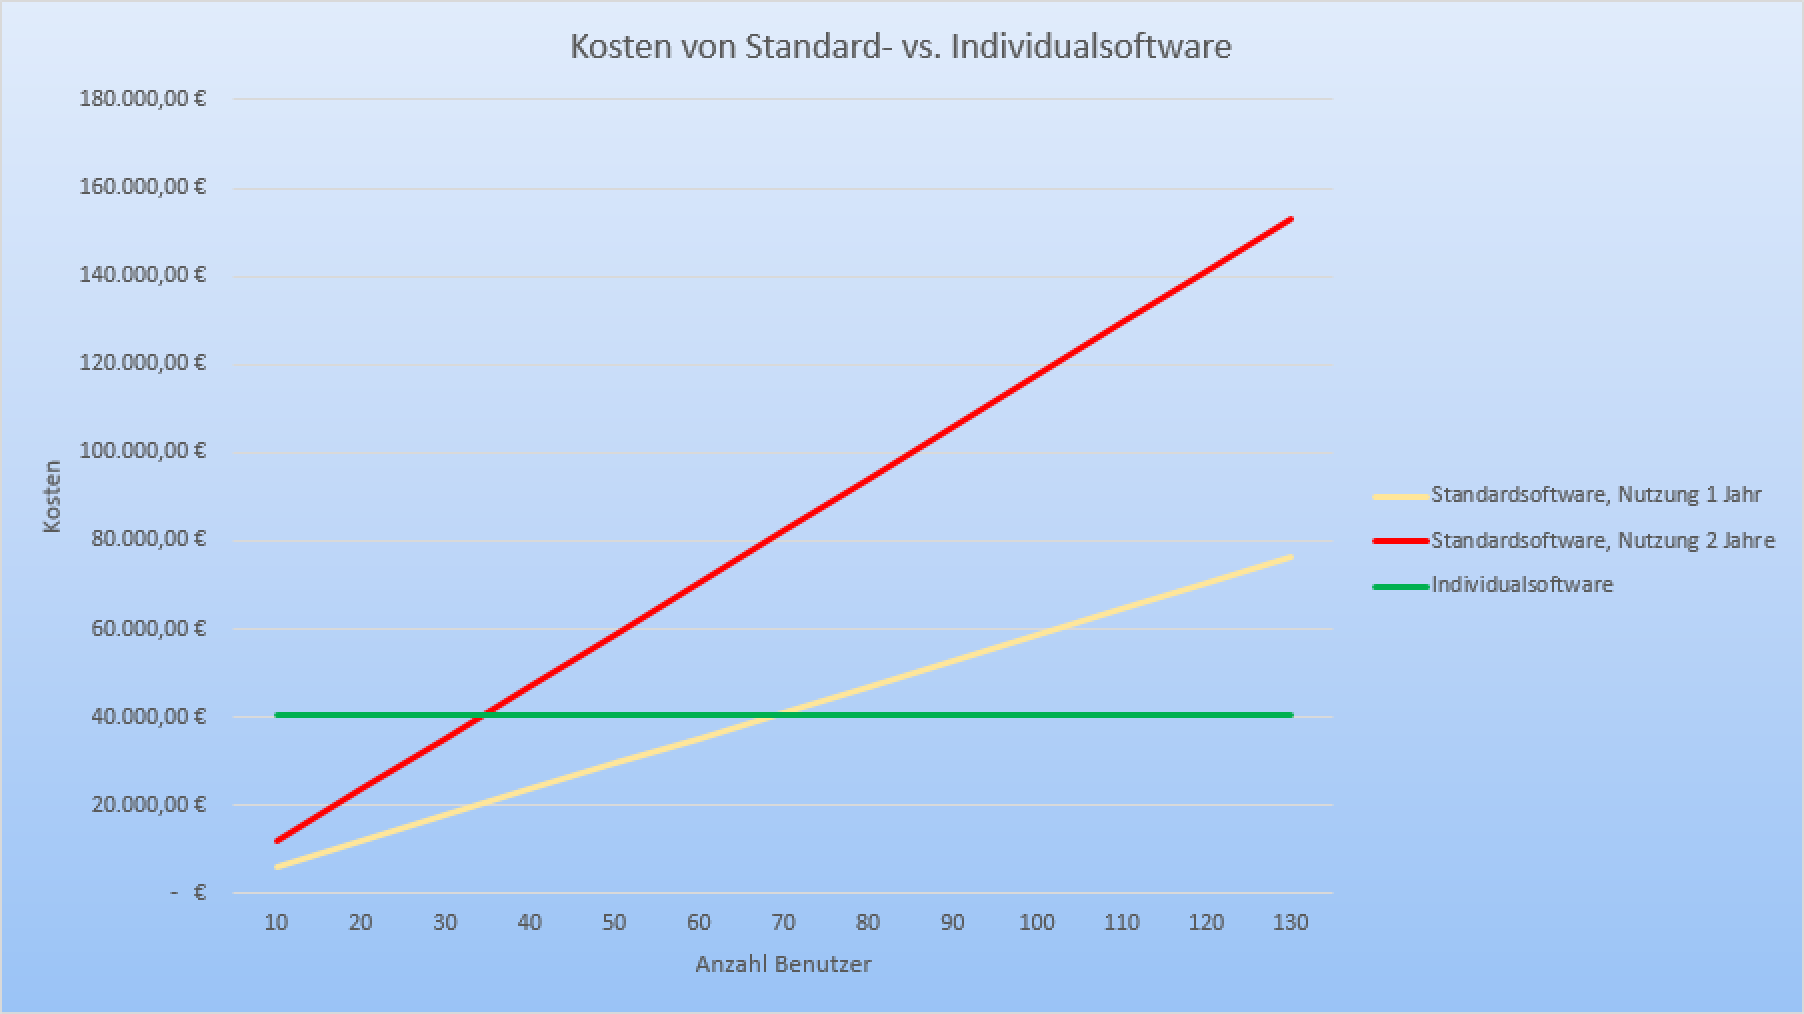 Kosten von Standard- vs. Individualsoftware